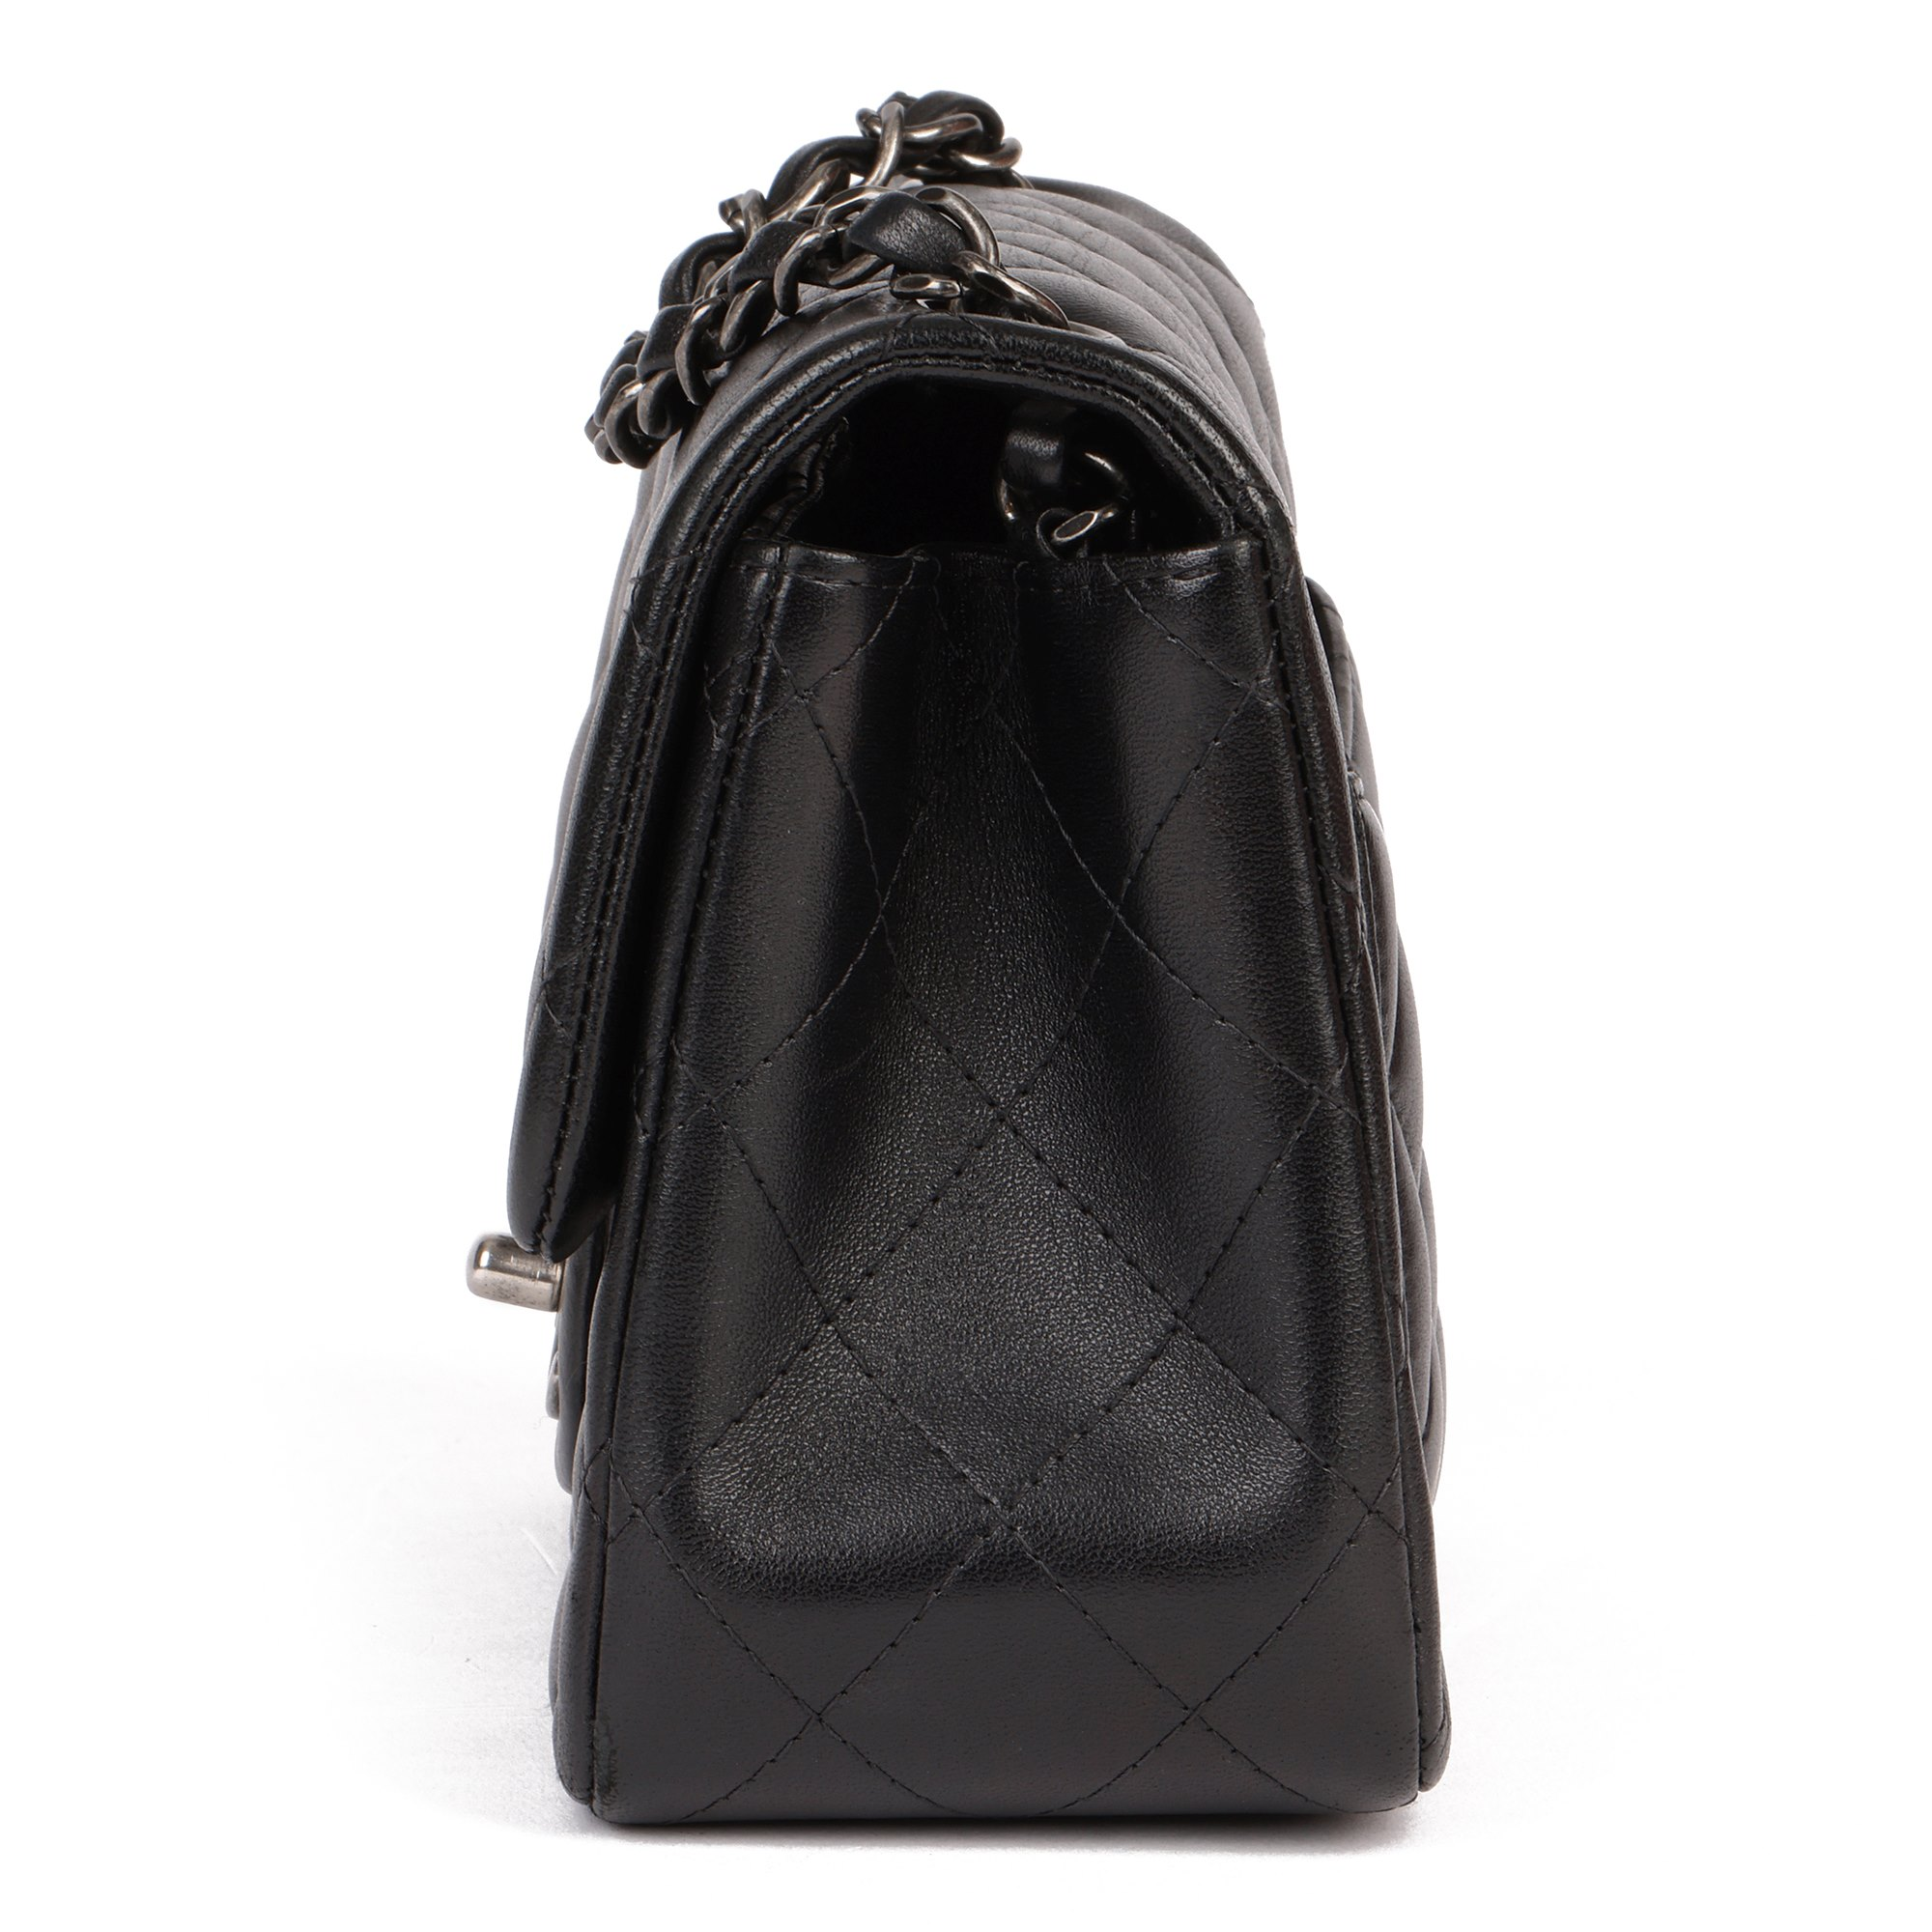 Chanel Black Quilted Lambskin Leather Mini Flap Bag